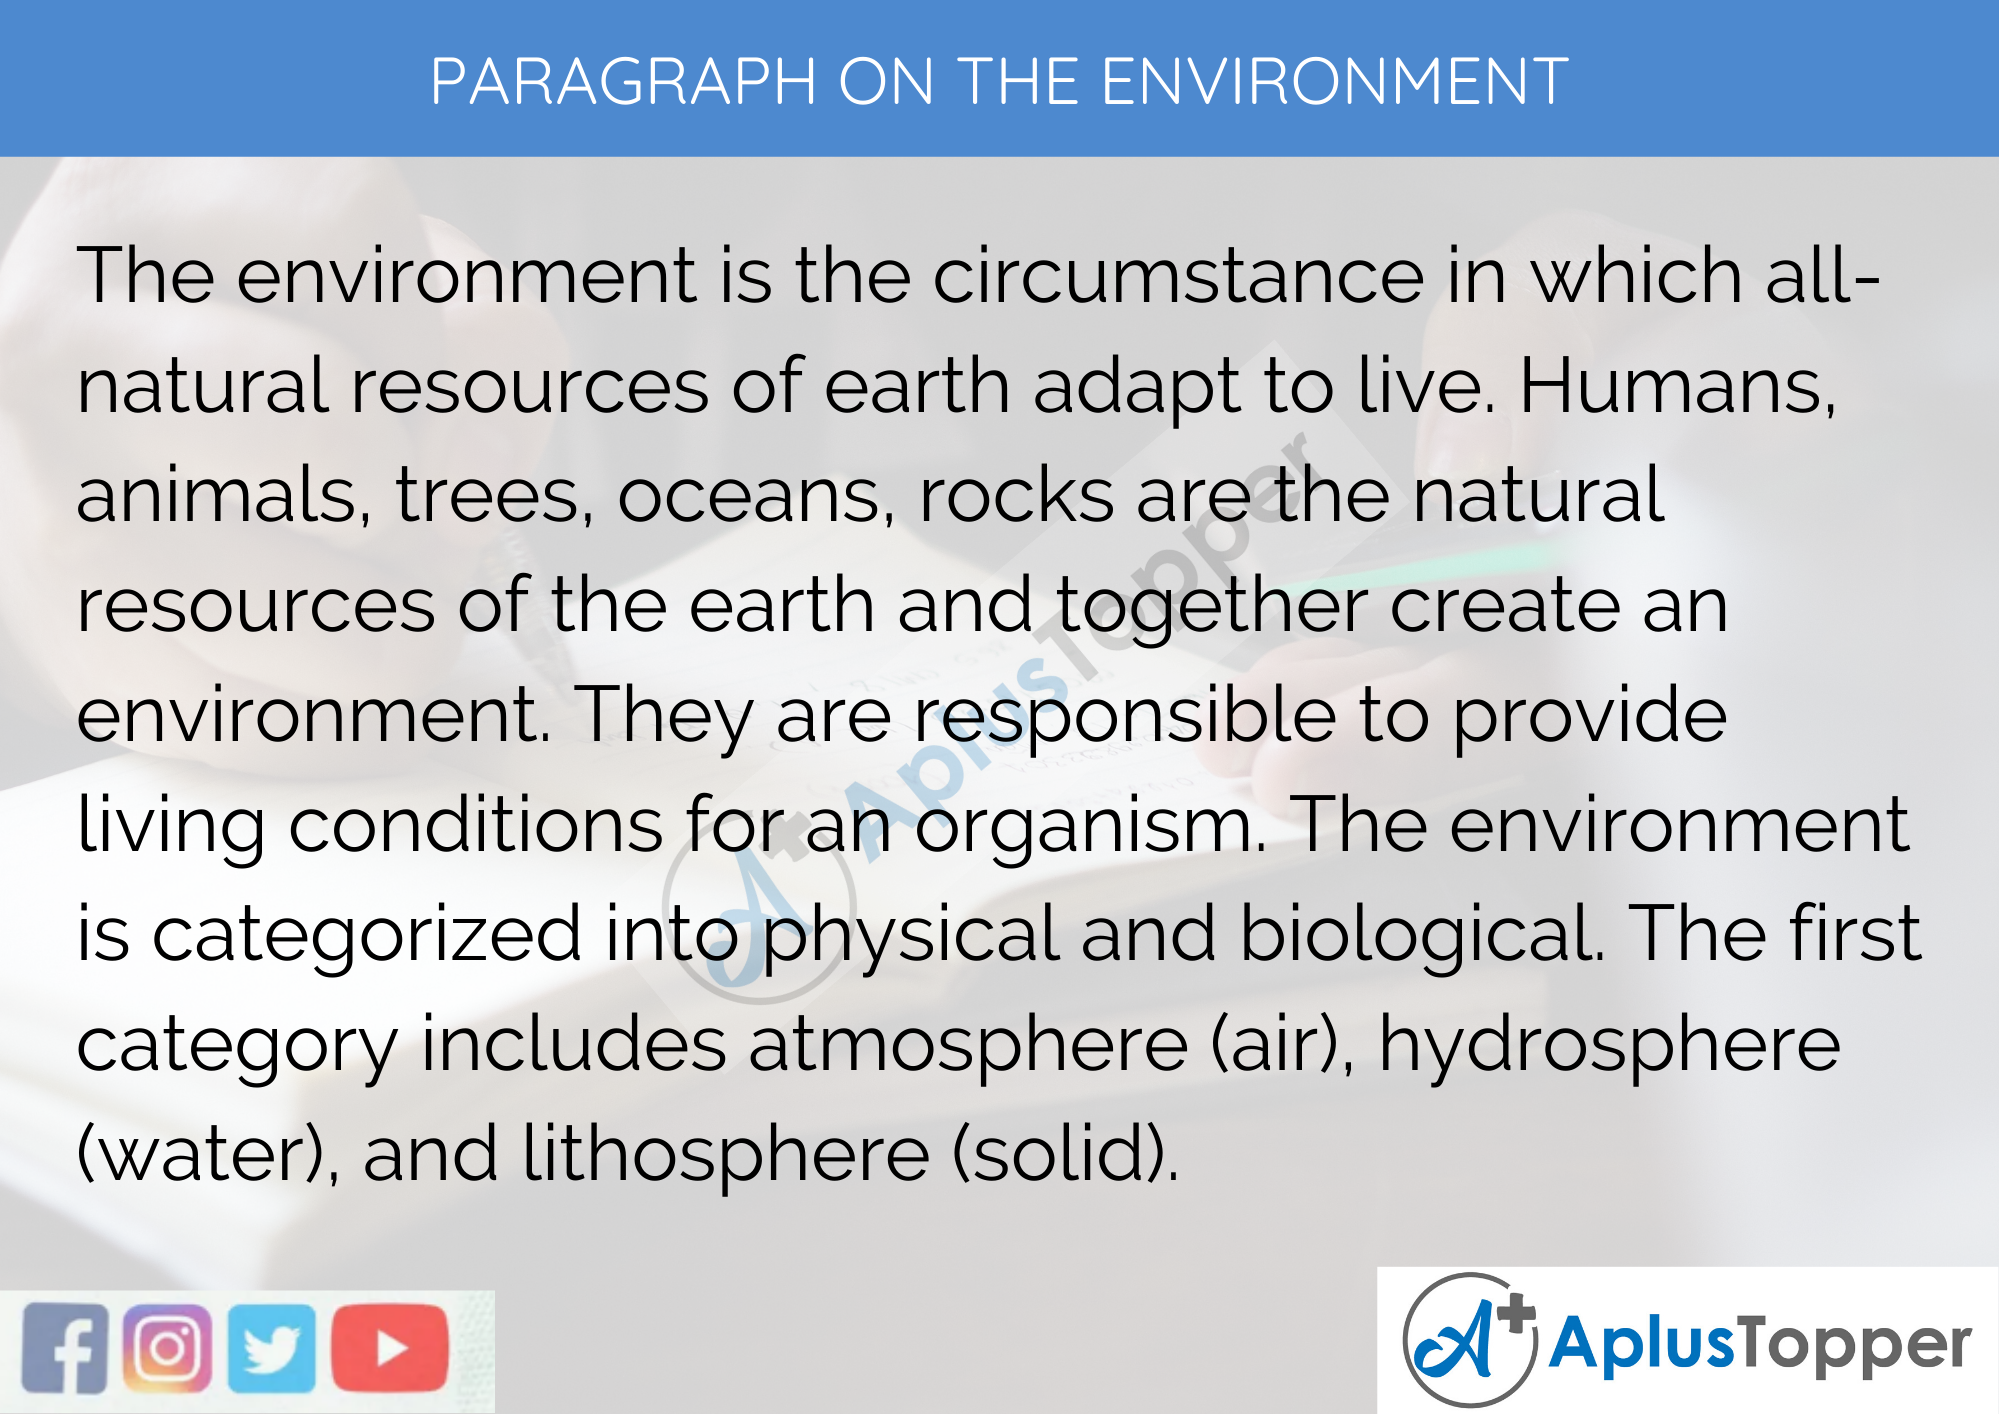 Paragraph on the Environment